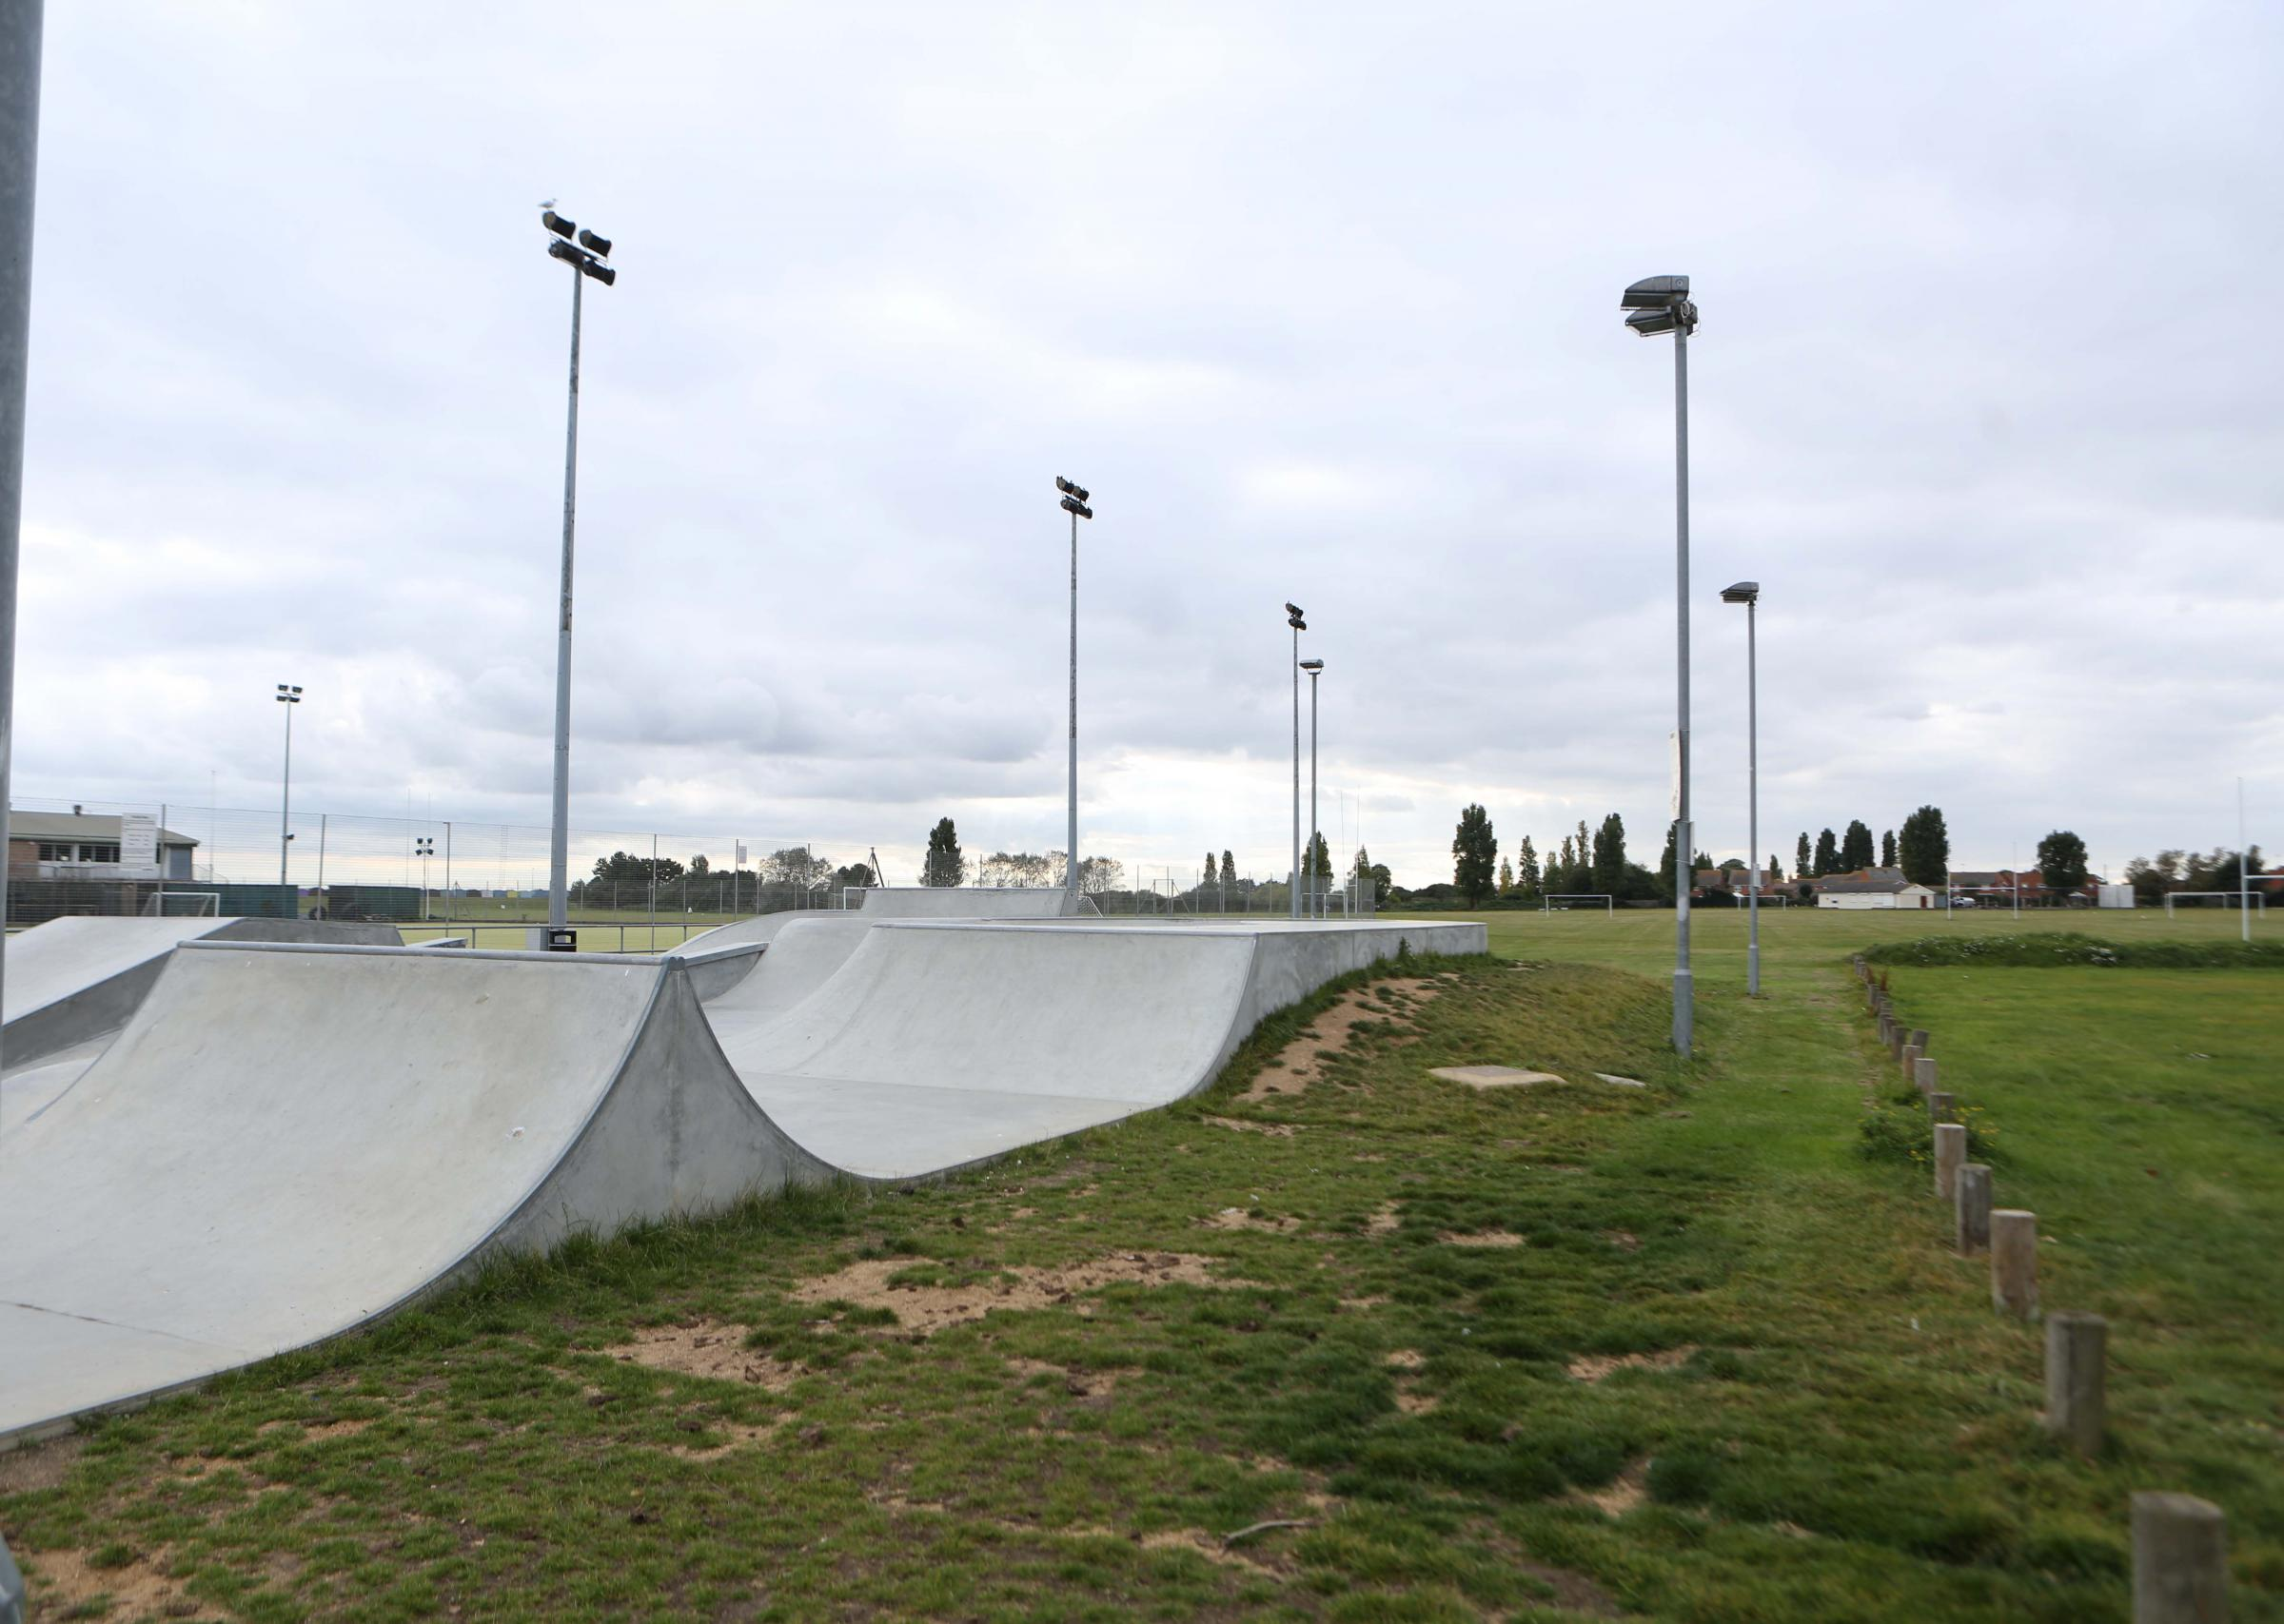 Parent warns teens are being forced to fight each other at skate park